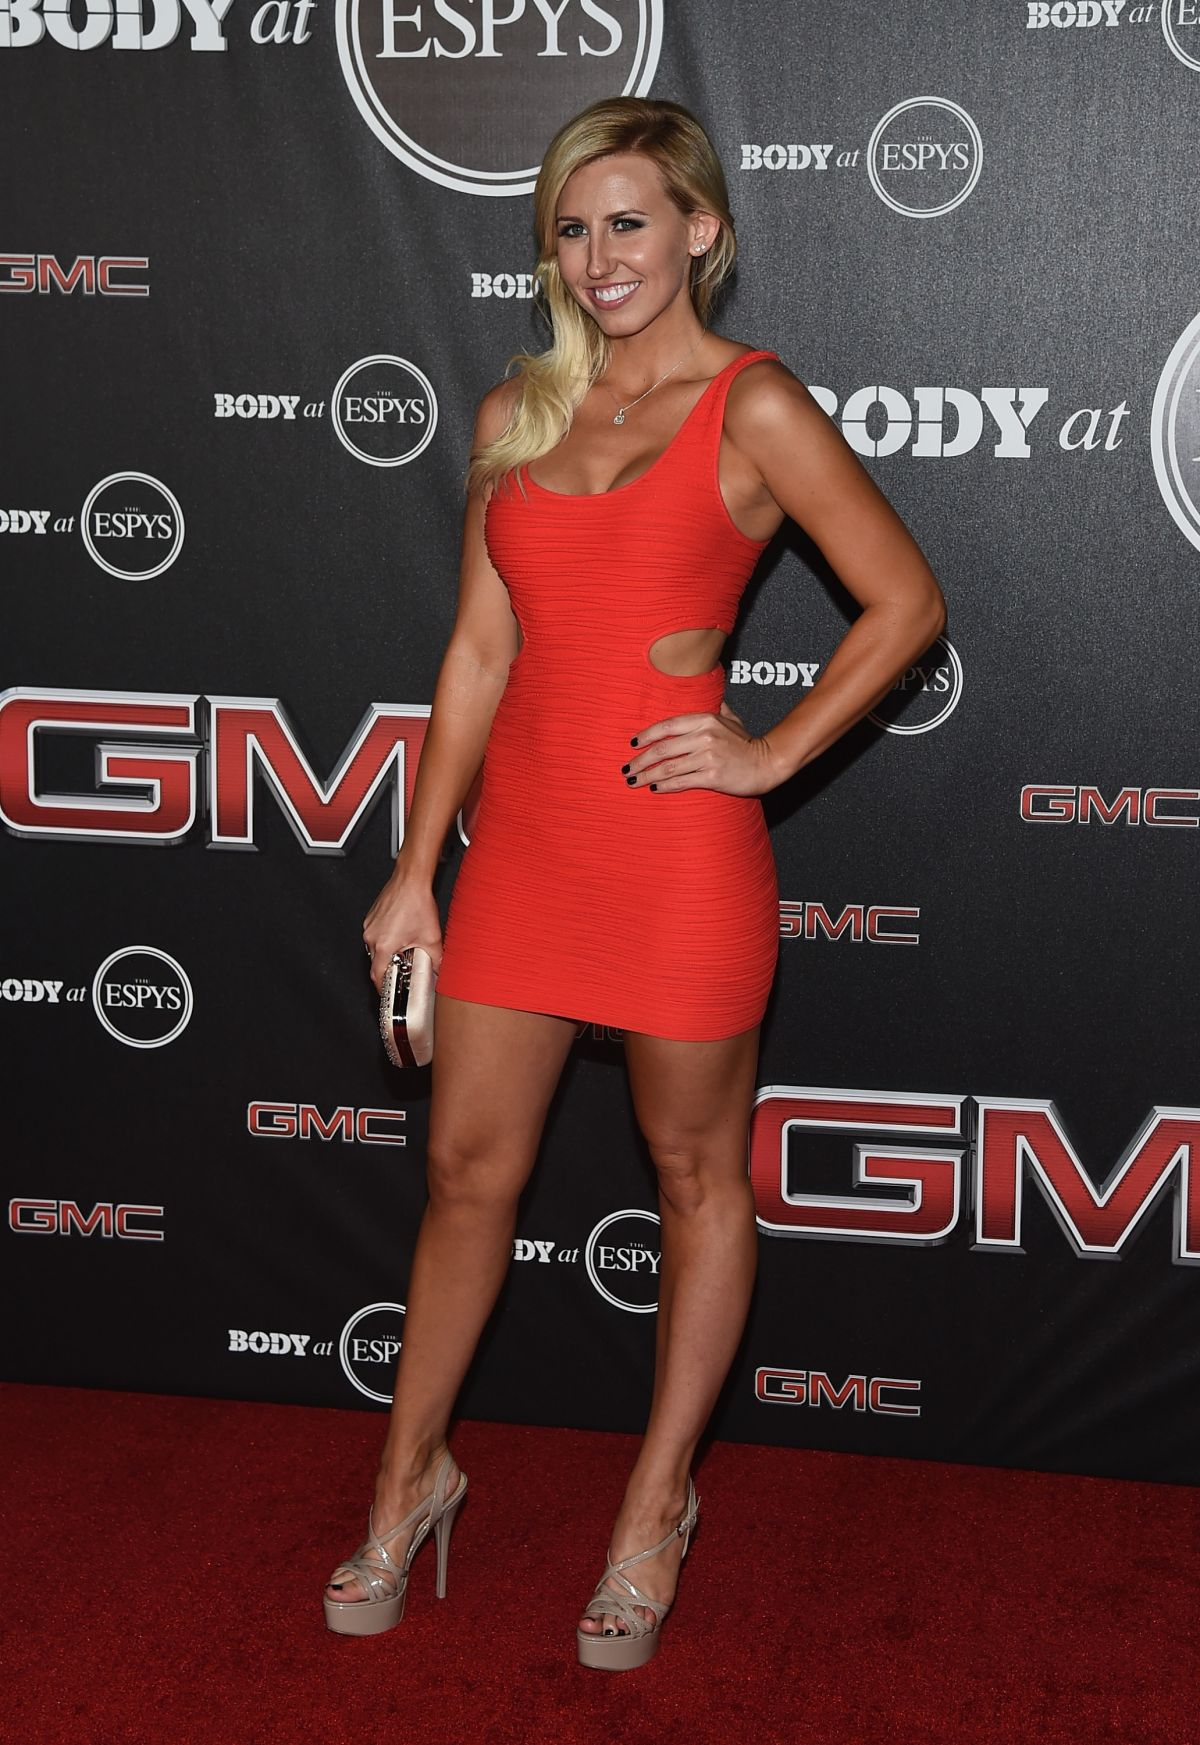 COURTNEY FORCE at ESPN Presents Body at ESPYS